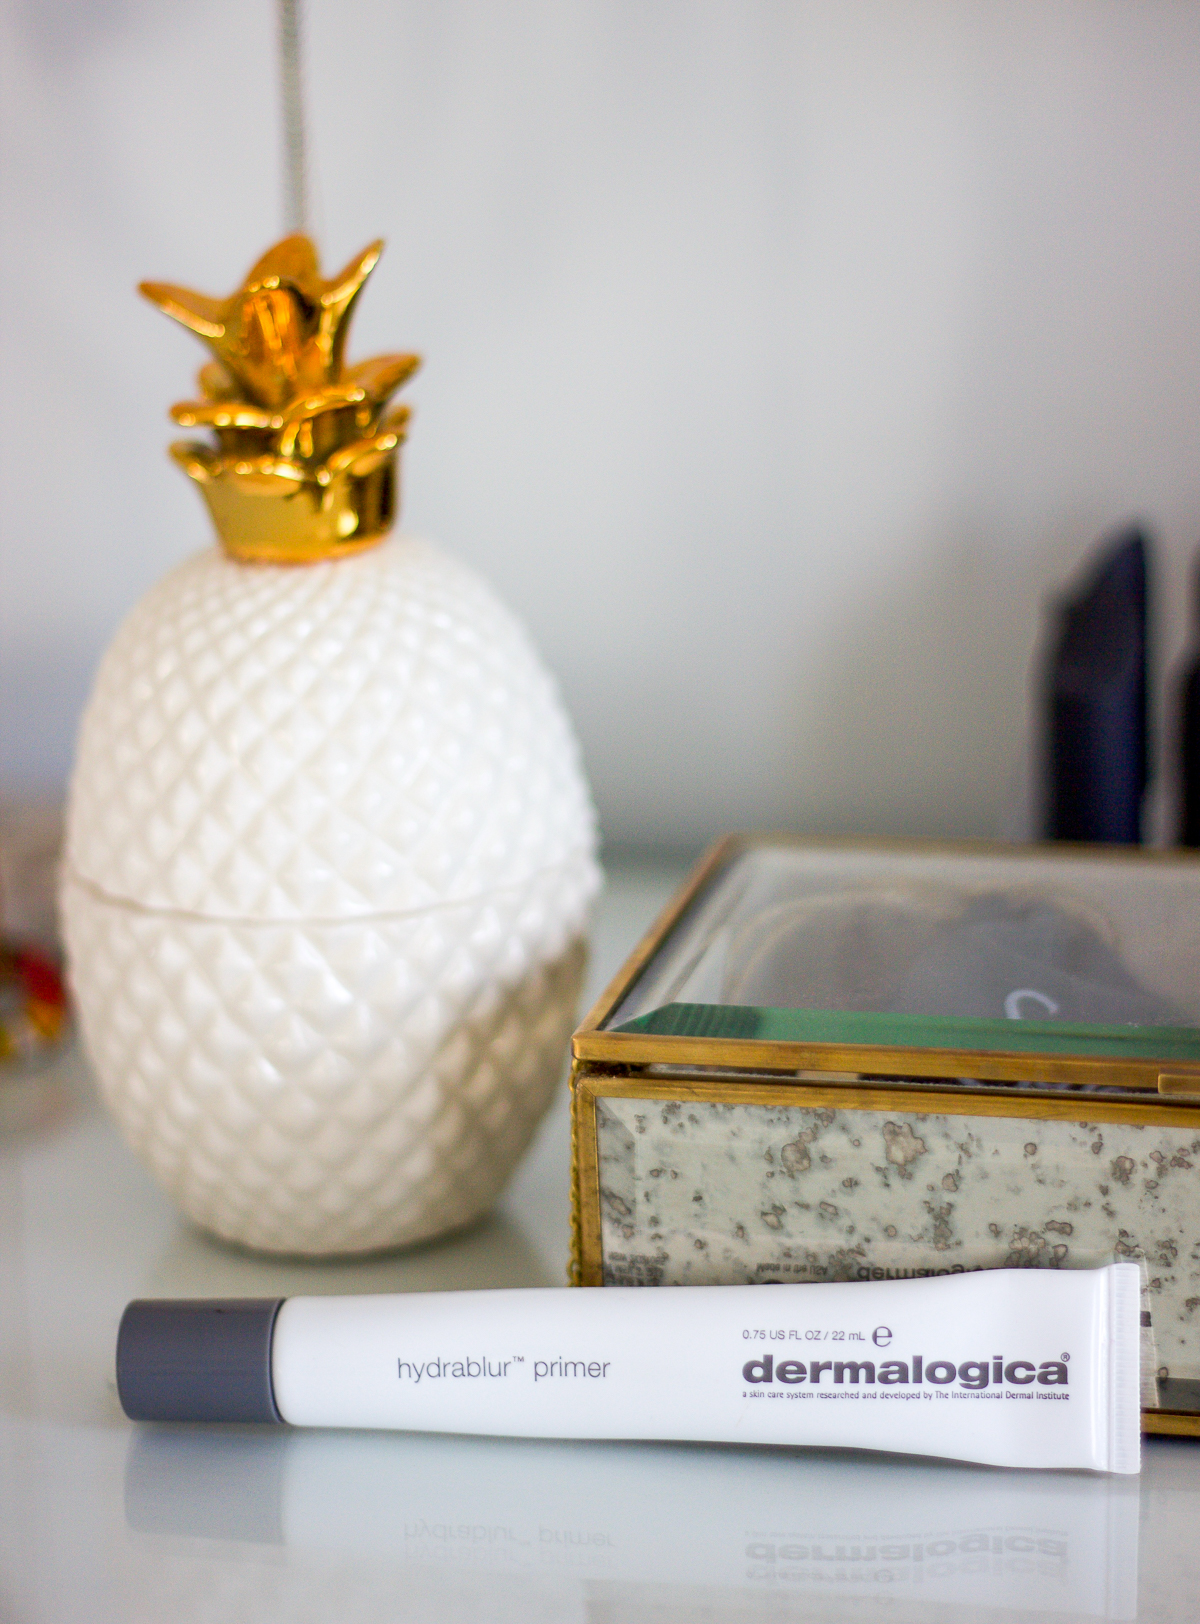 Dermalogica Hydrablur primer review for smooth skin